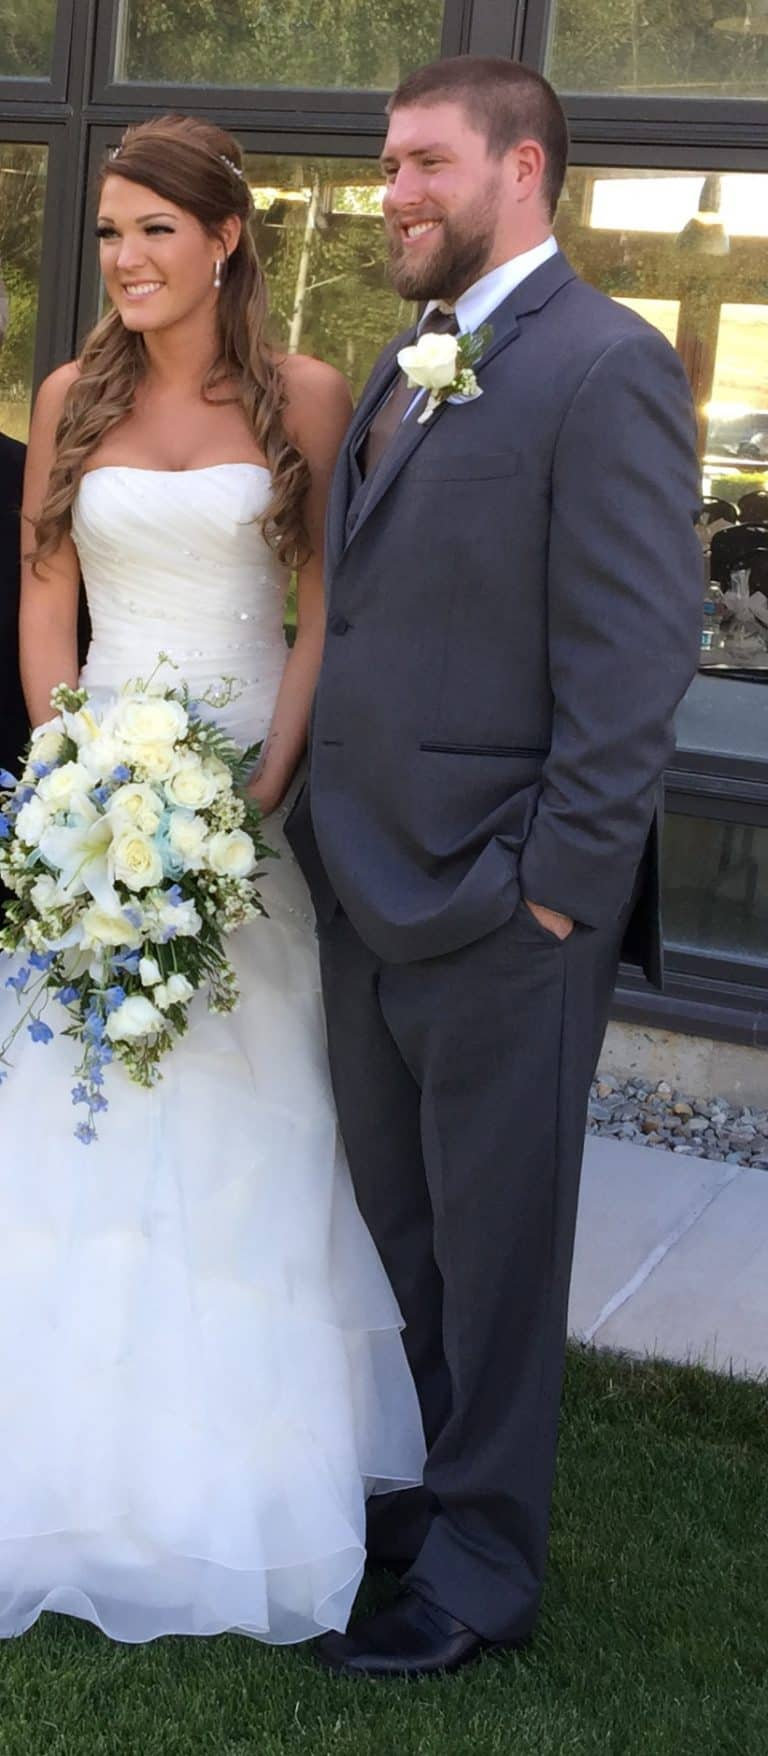 The Craigslist Wedding Dress: Finding Your Dress for Less!